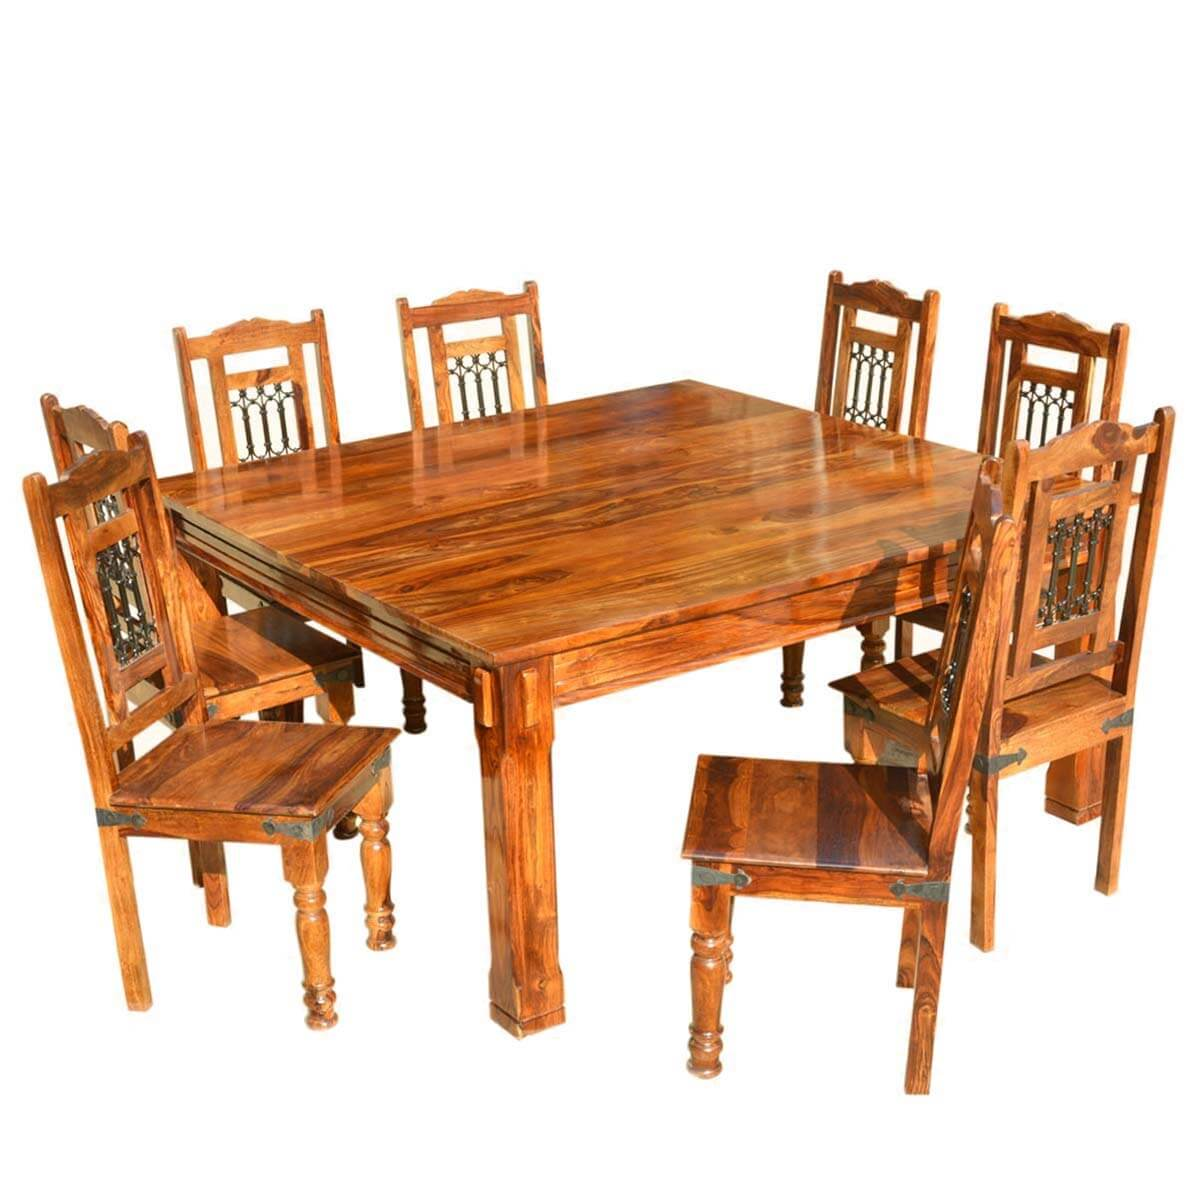 Solid wood rustic square dining table chairs set for Square dinette sets